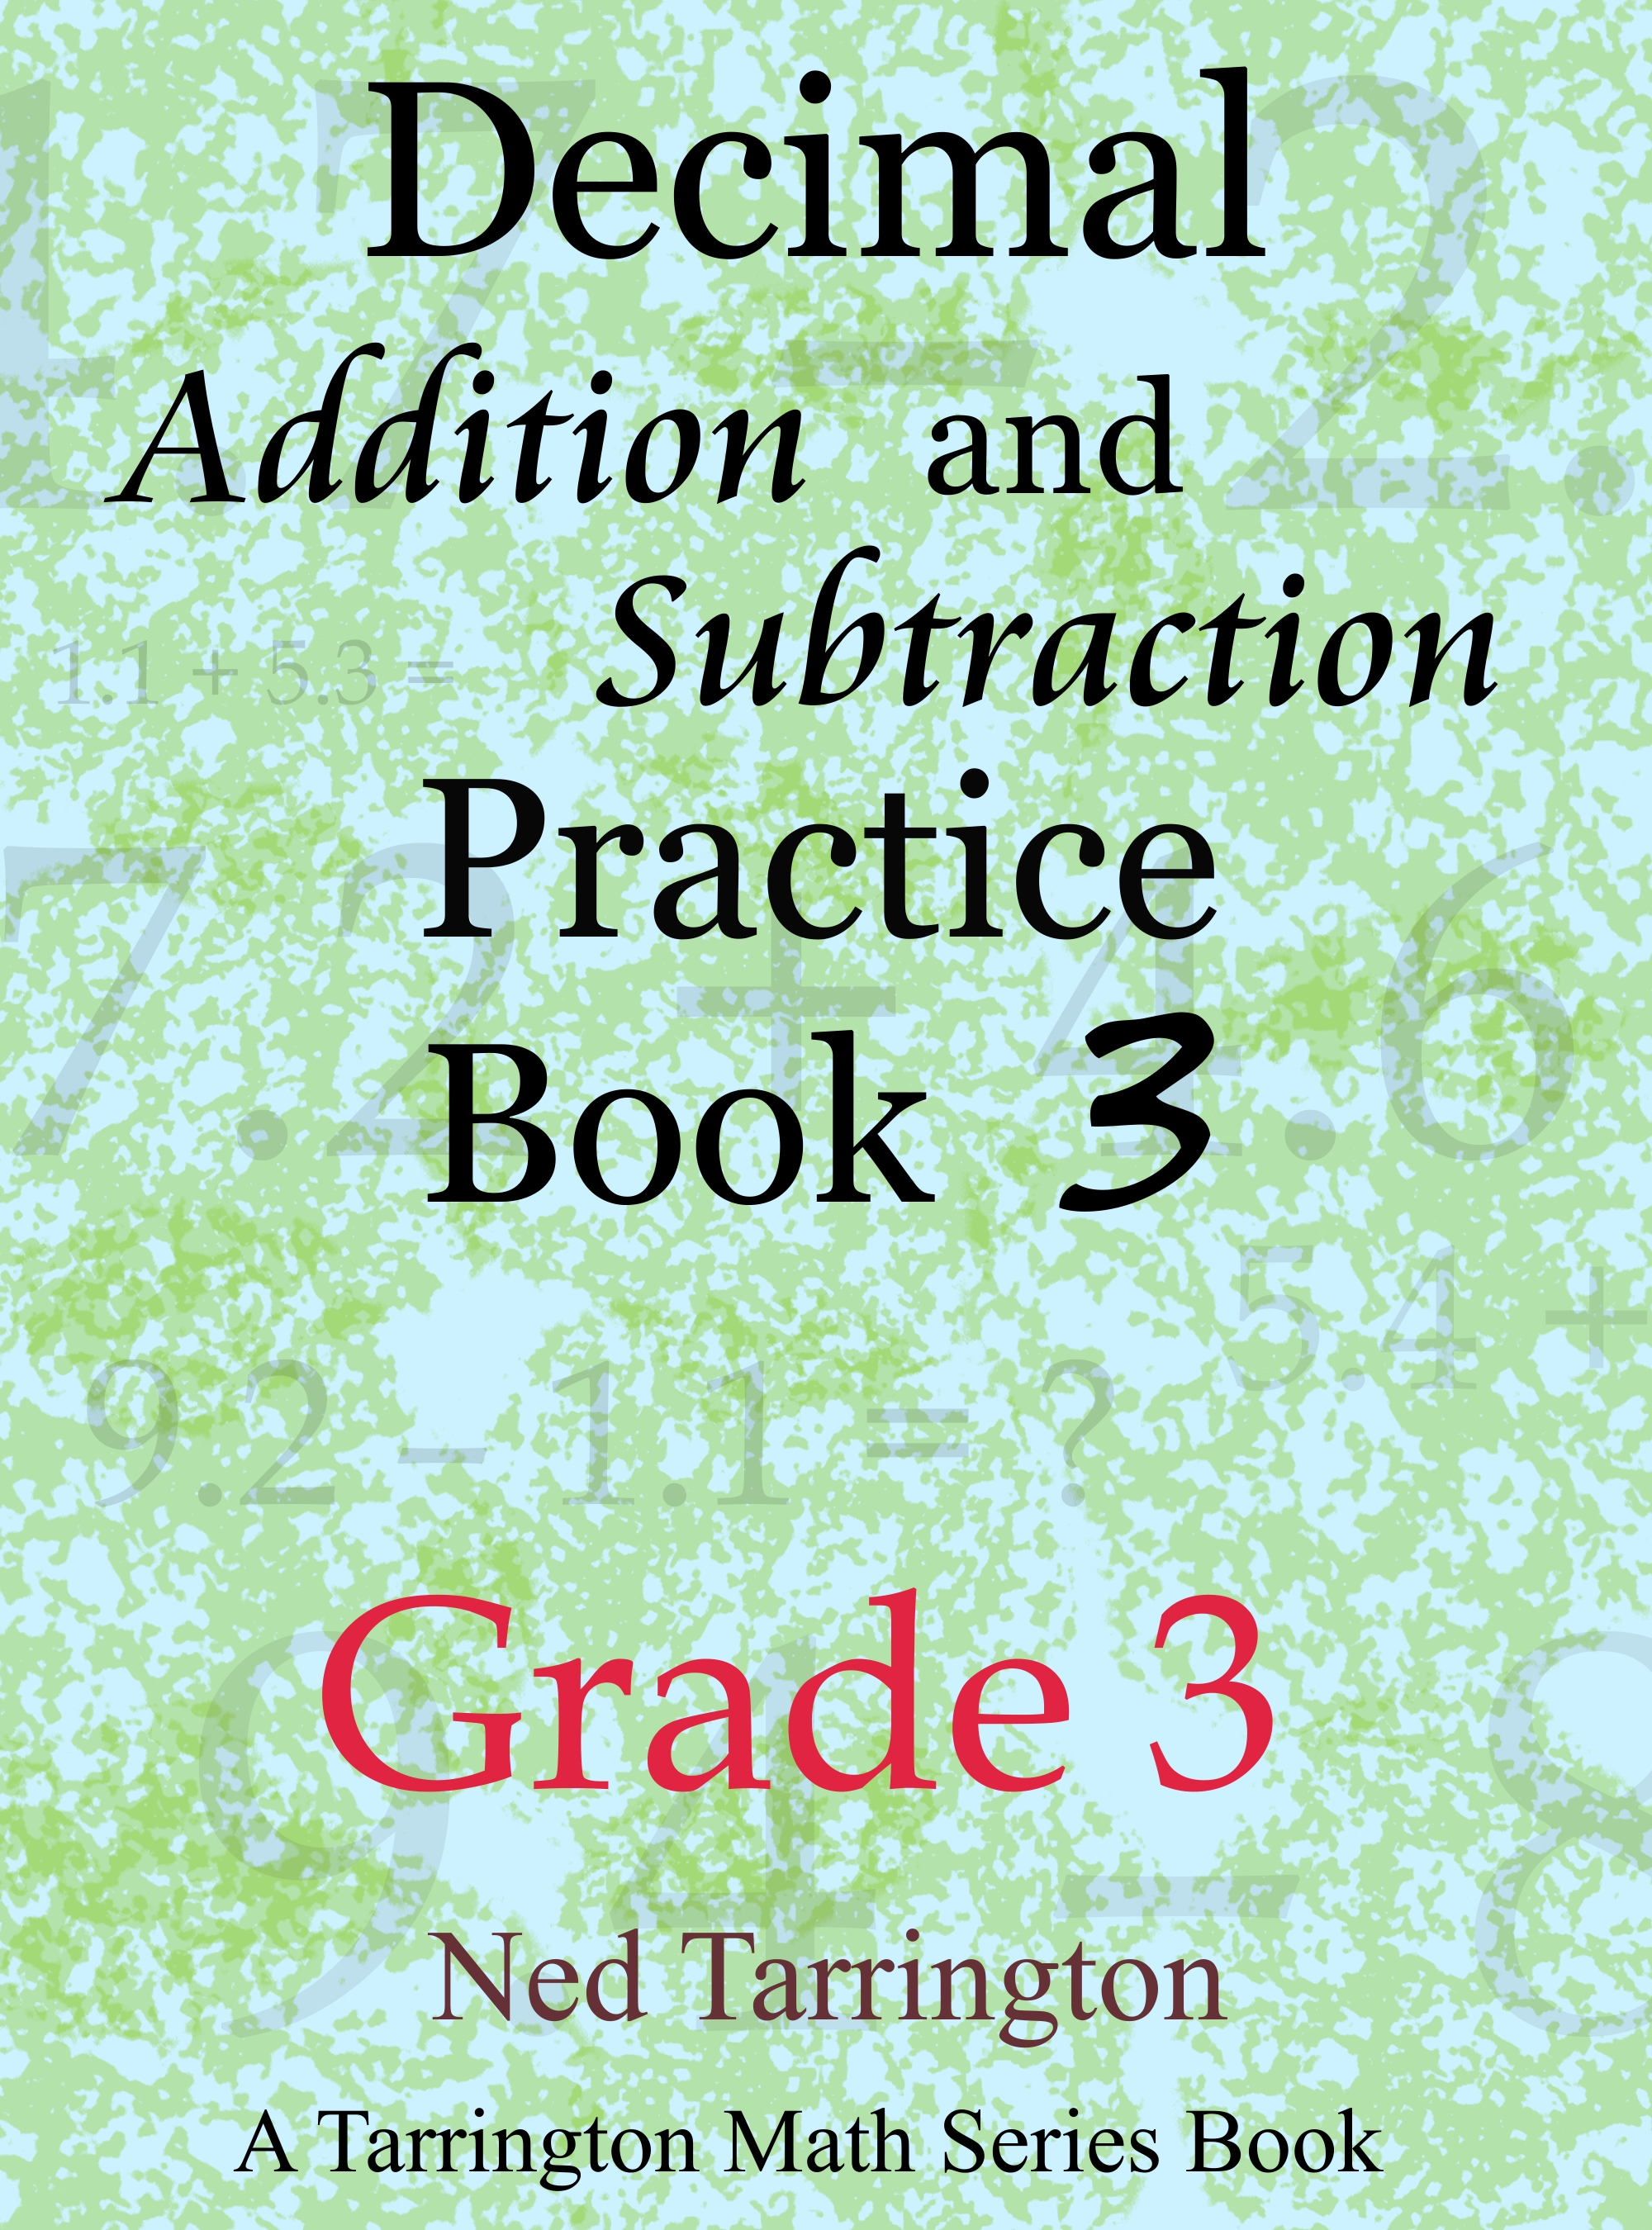 Decimal Addition and Subtraction Practice Book 3, Grade 3, an Ebook by Ned  Tarrington